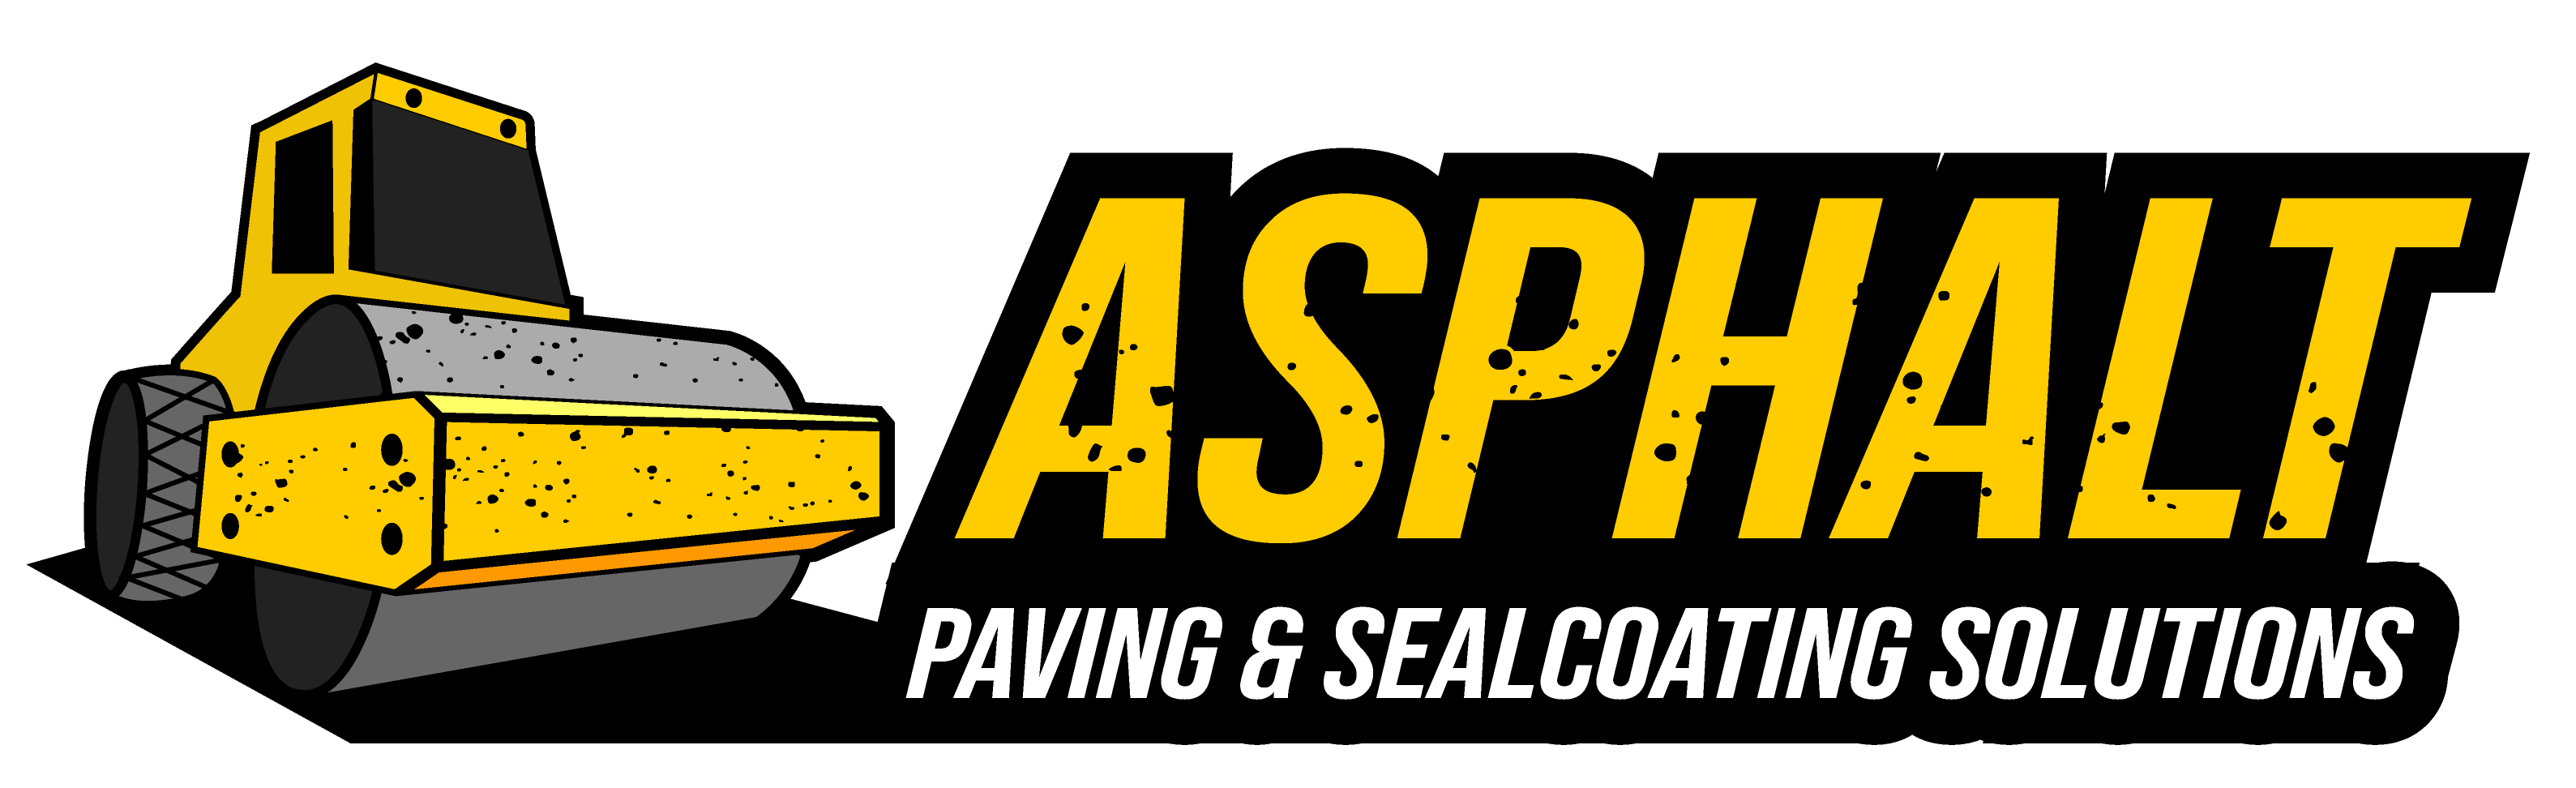 Asphalt Paving Seal Coating Solutions Logo